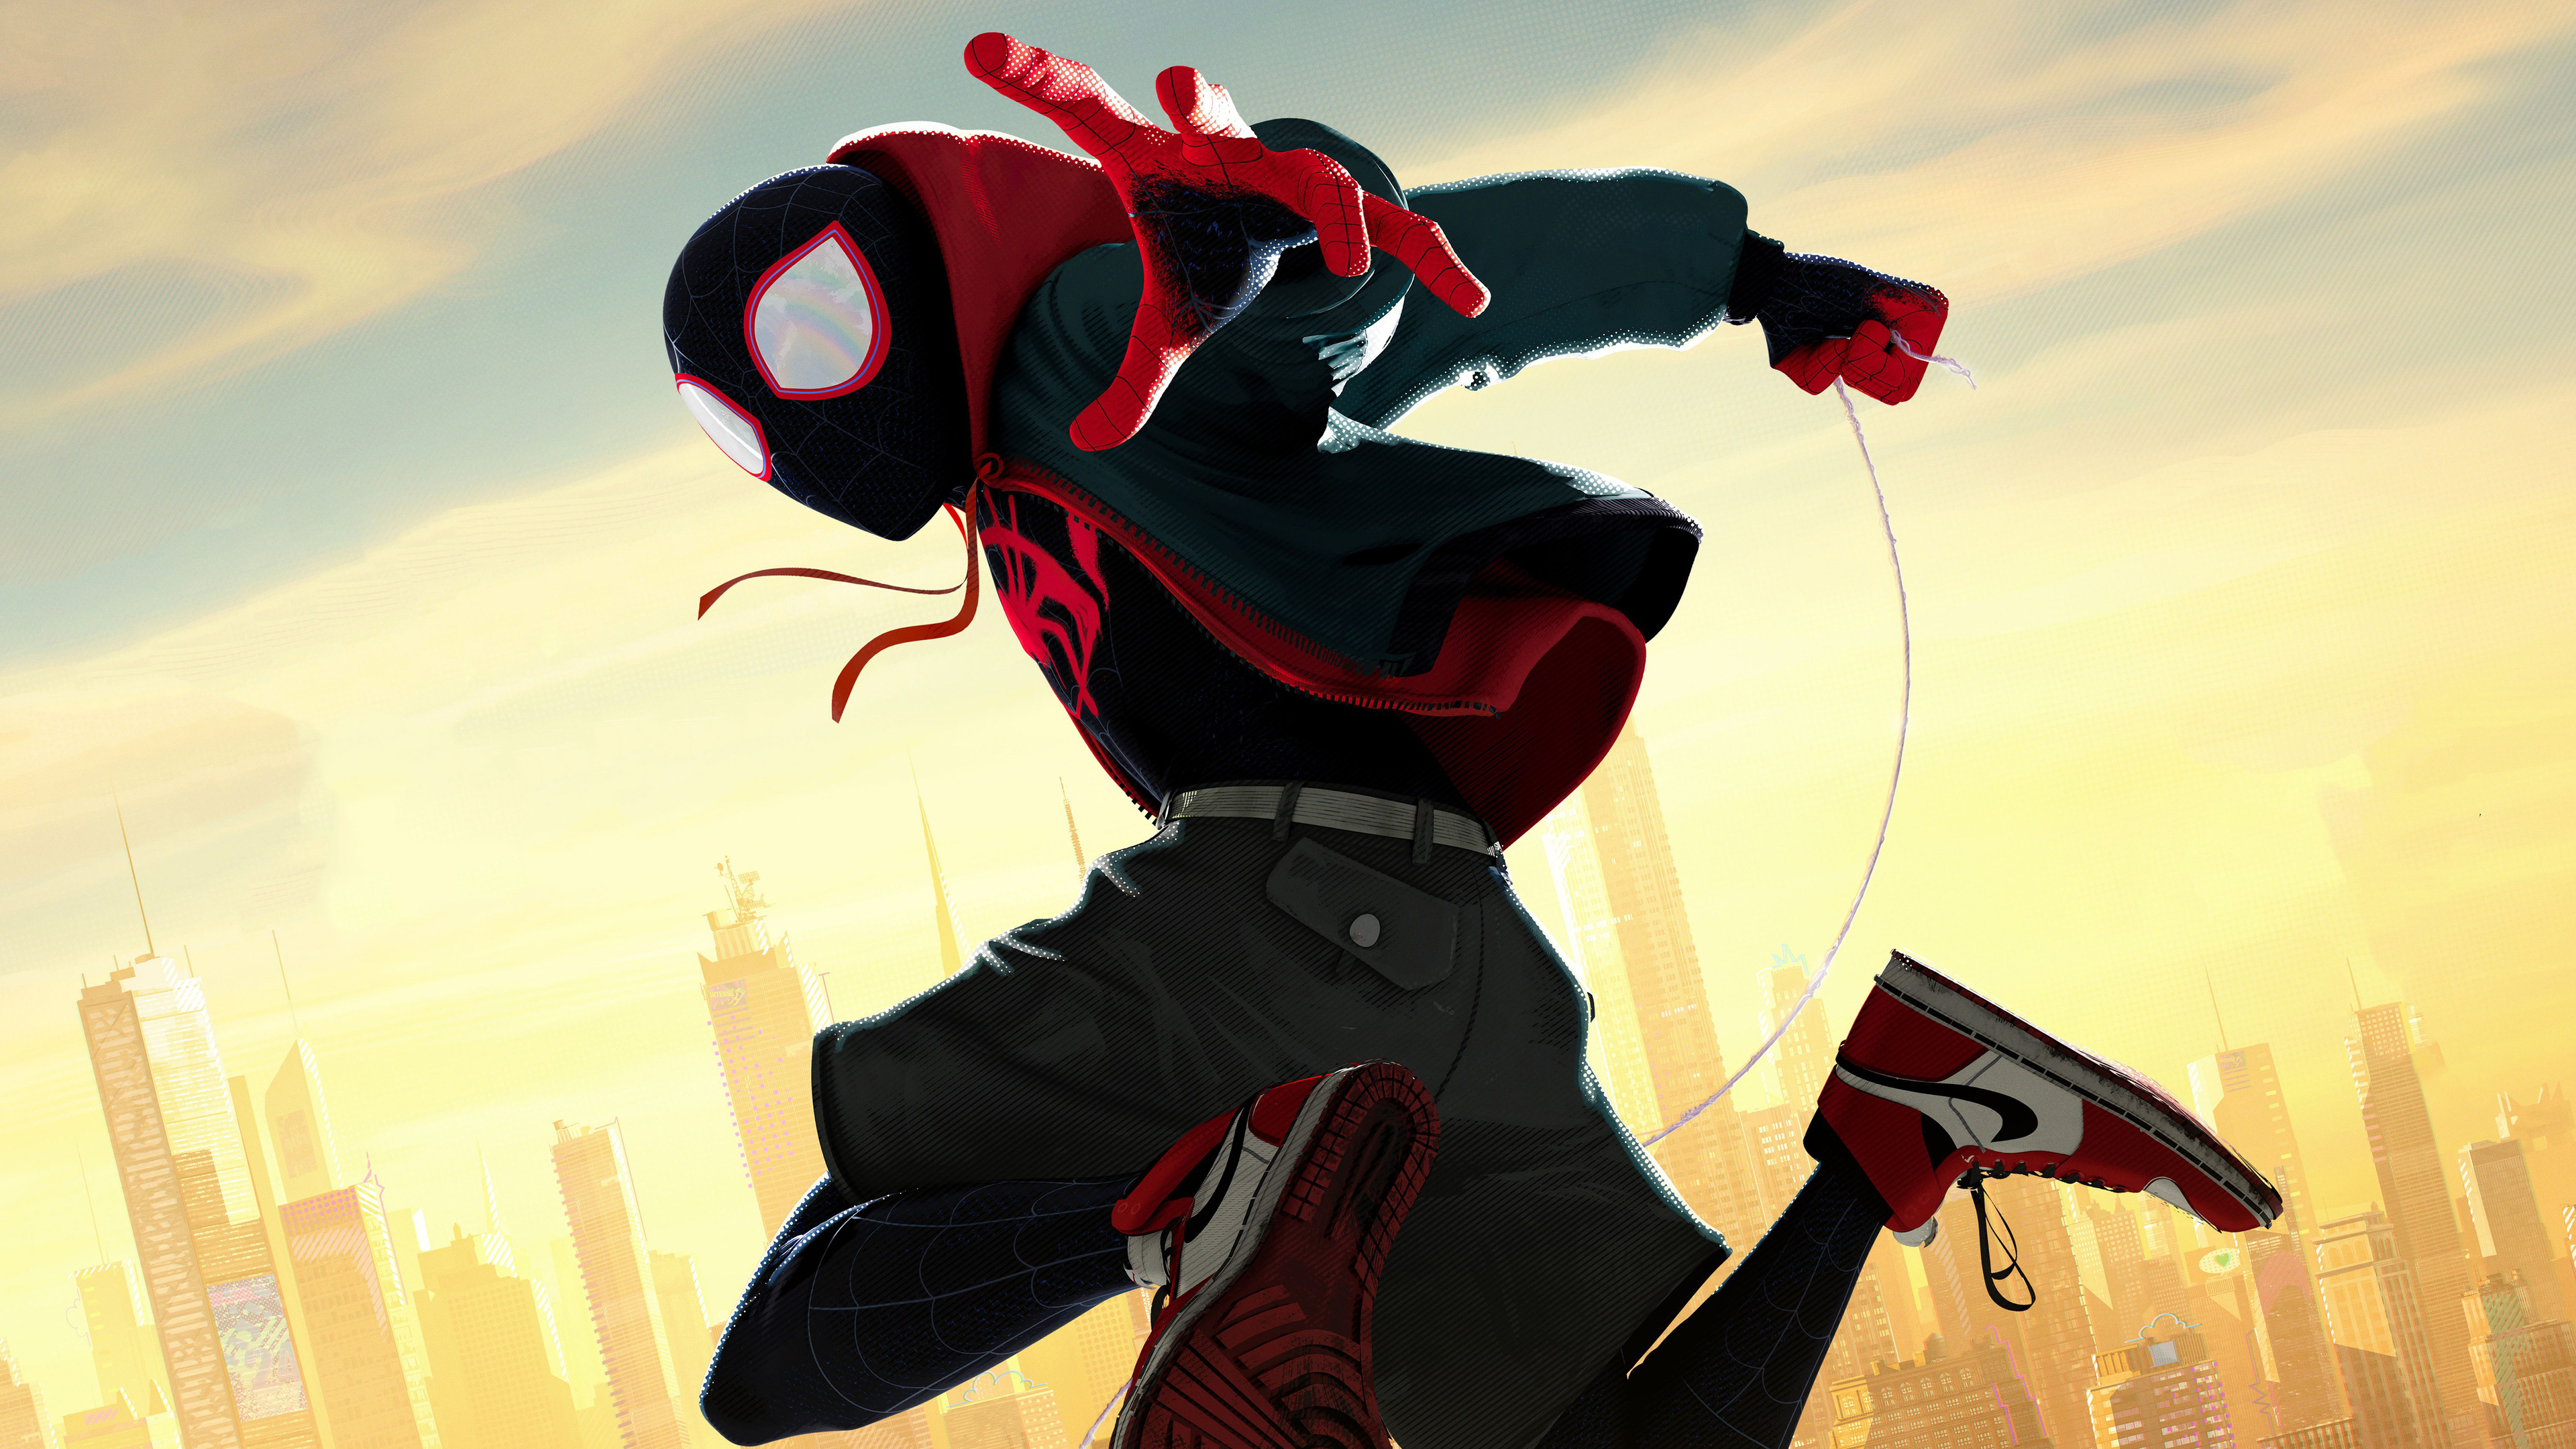 Wallpaper 4k Spiderman Into The Spider Verse Movie 5k Official